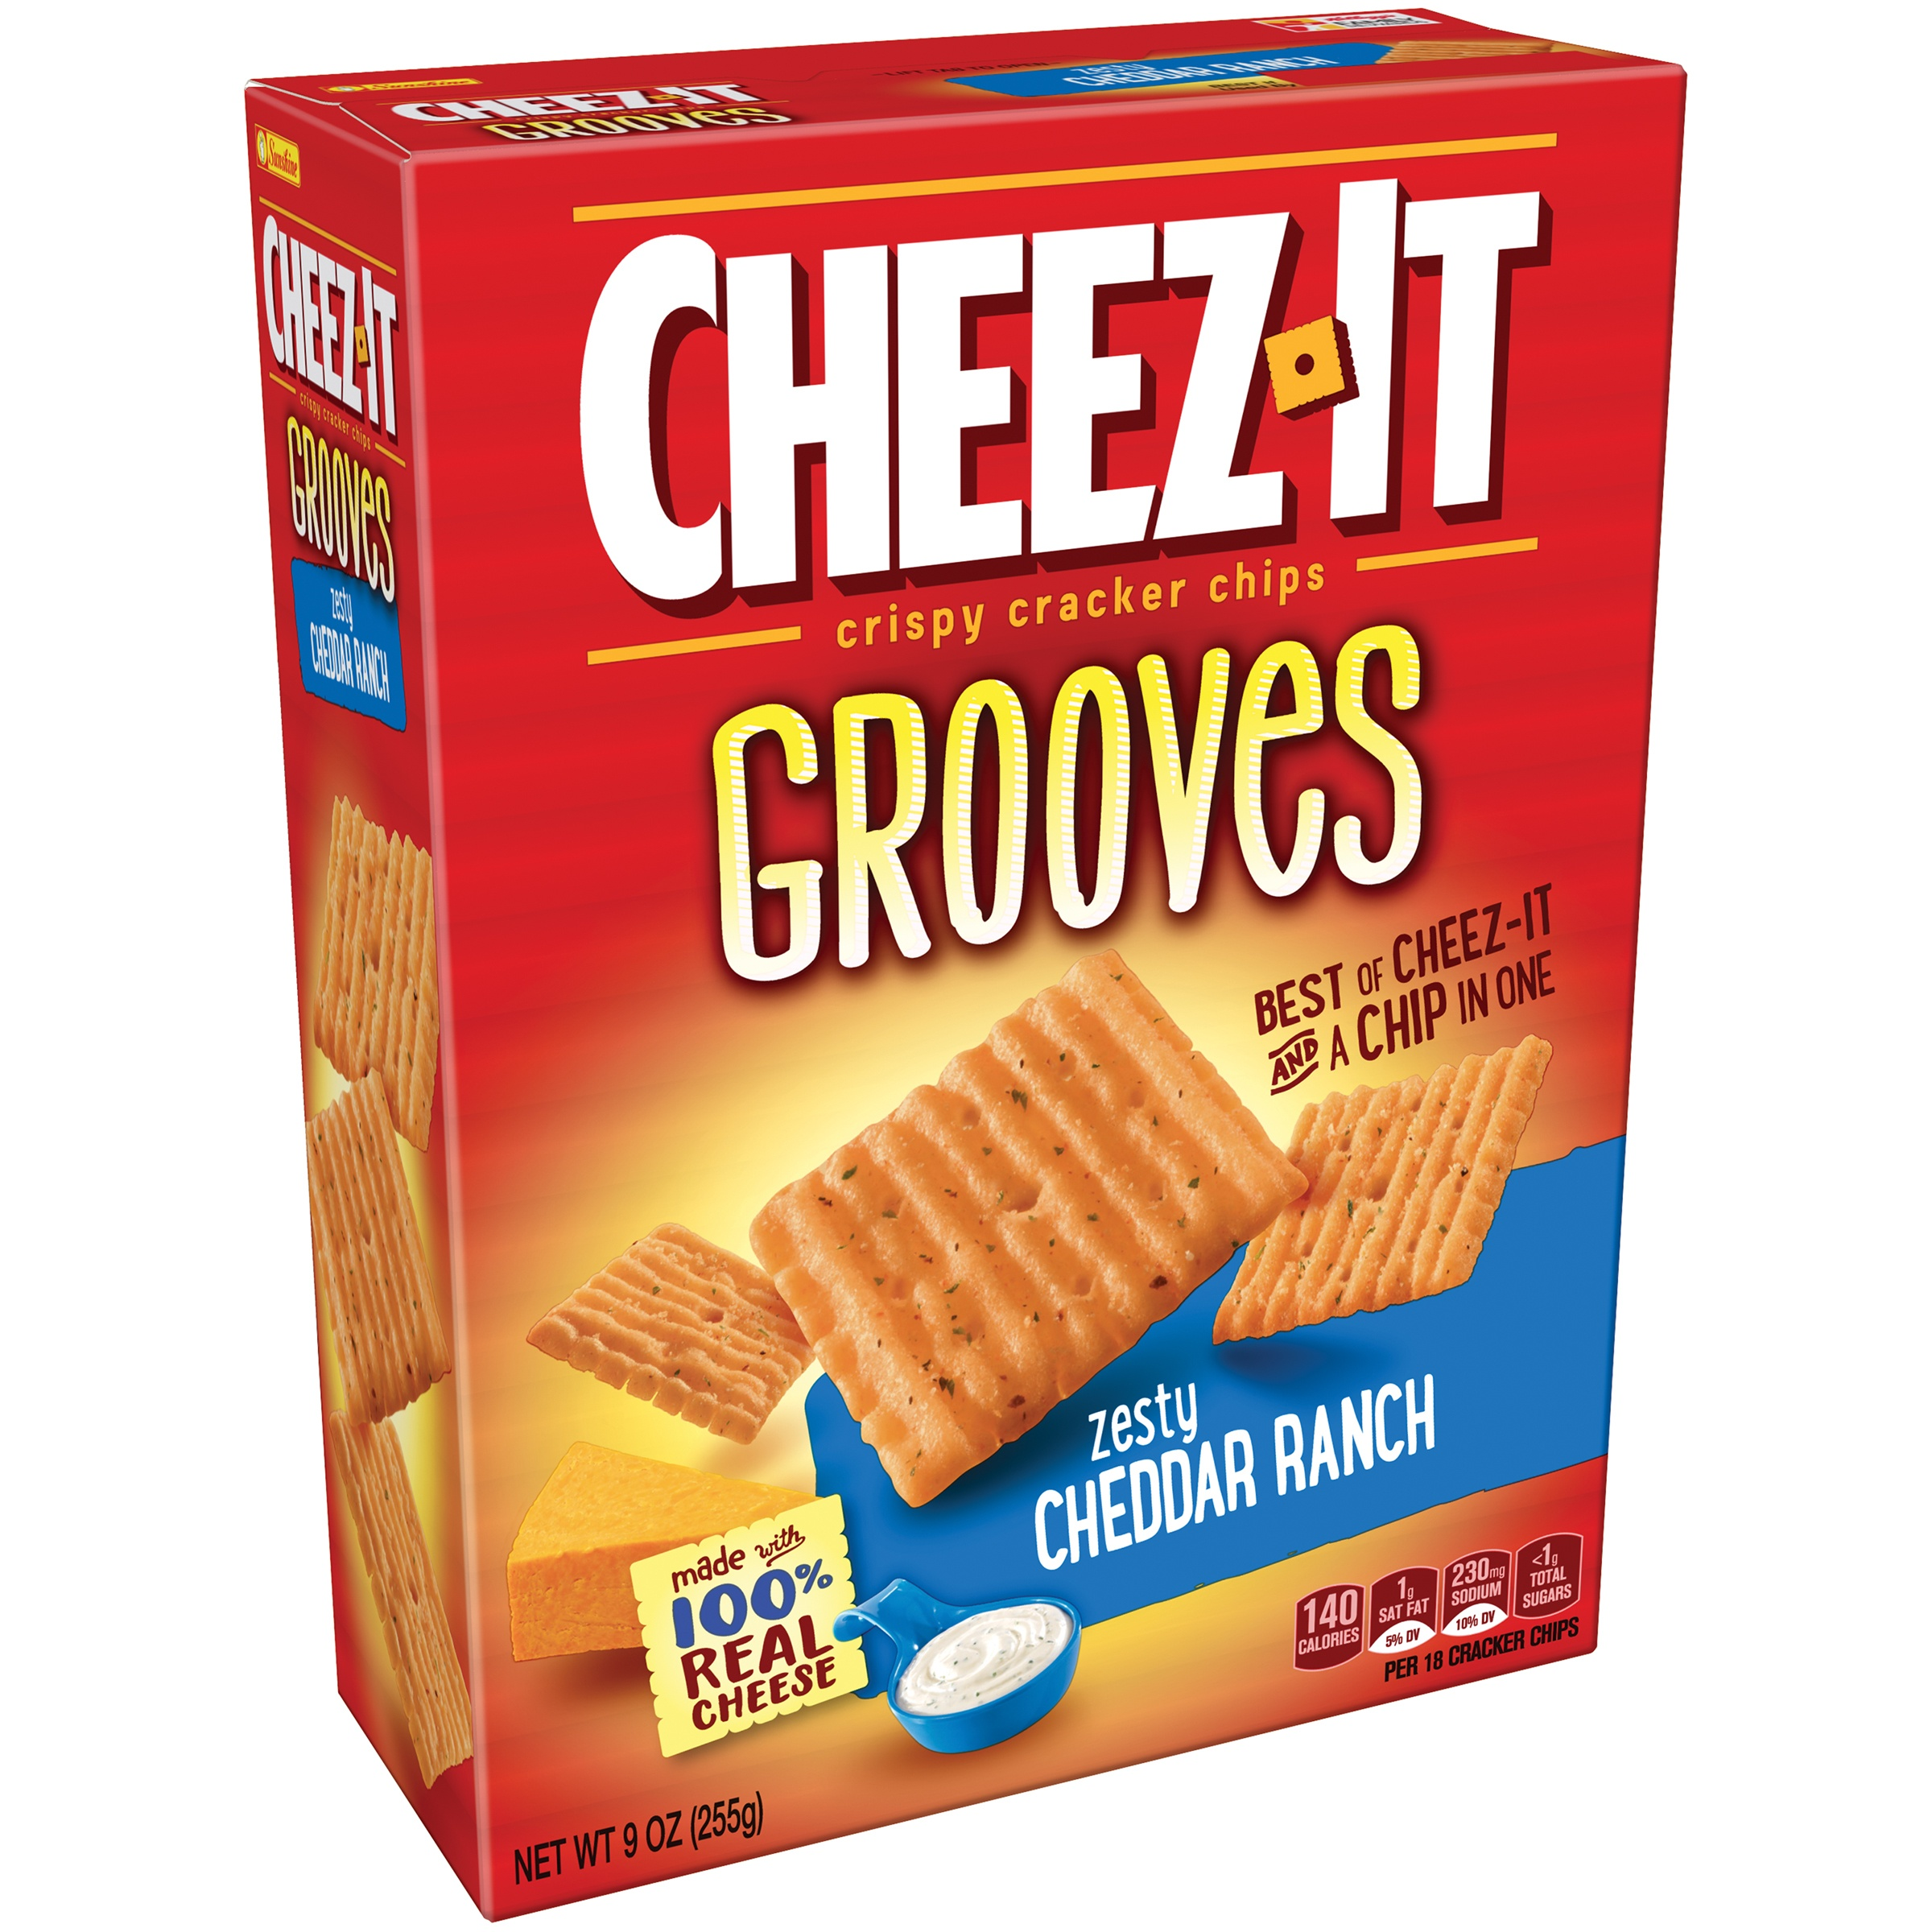 Cheez-It Grooves Zesty Cheddar Ranch Crispy Cracker Chips 9 oz. Box